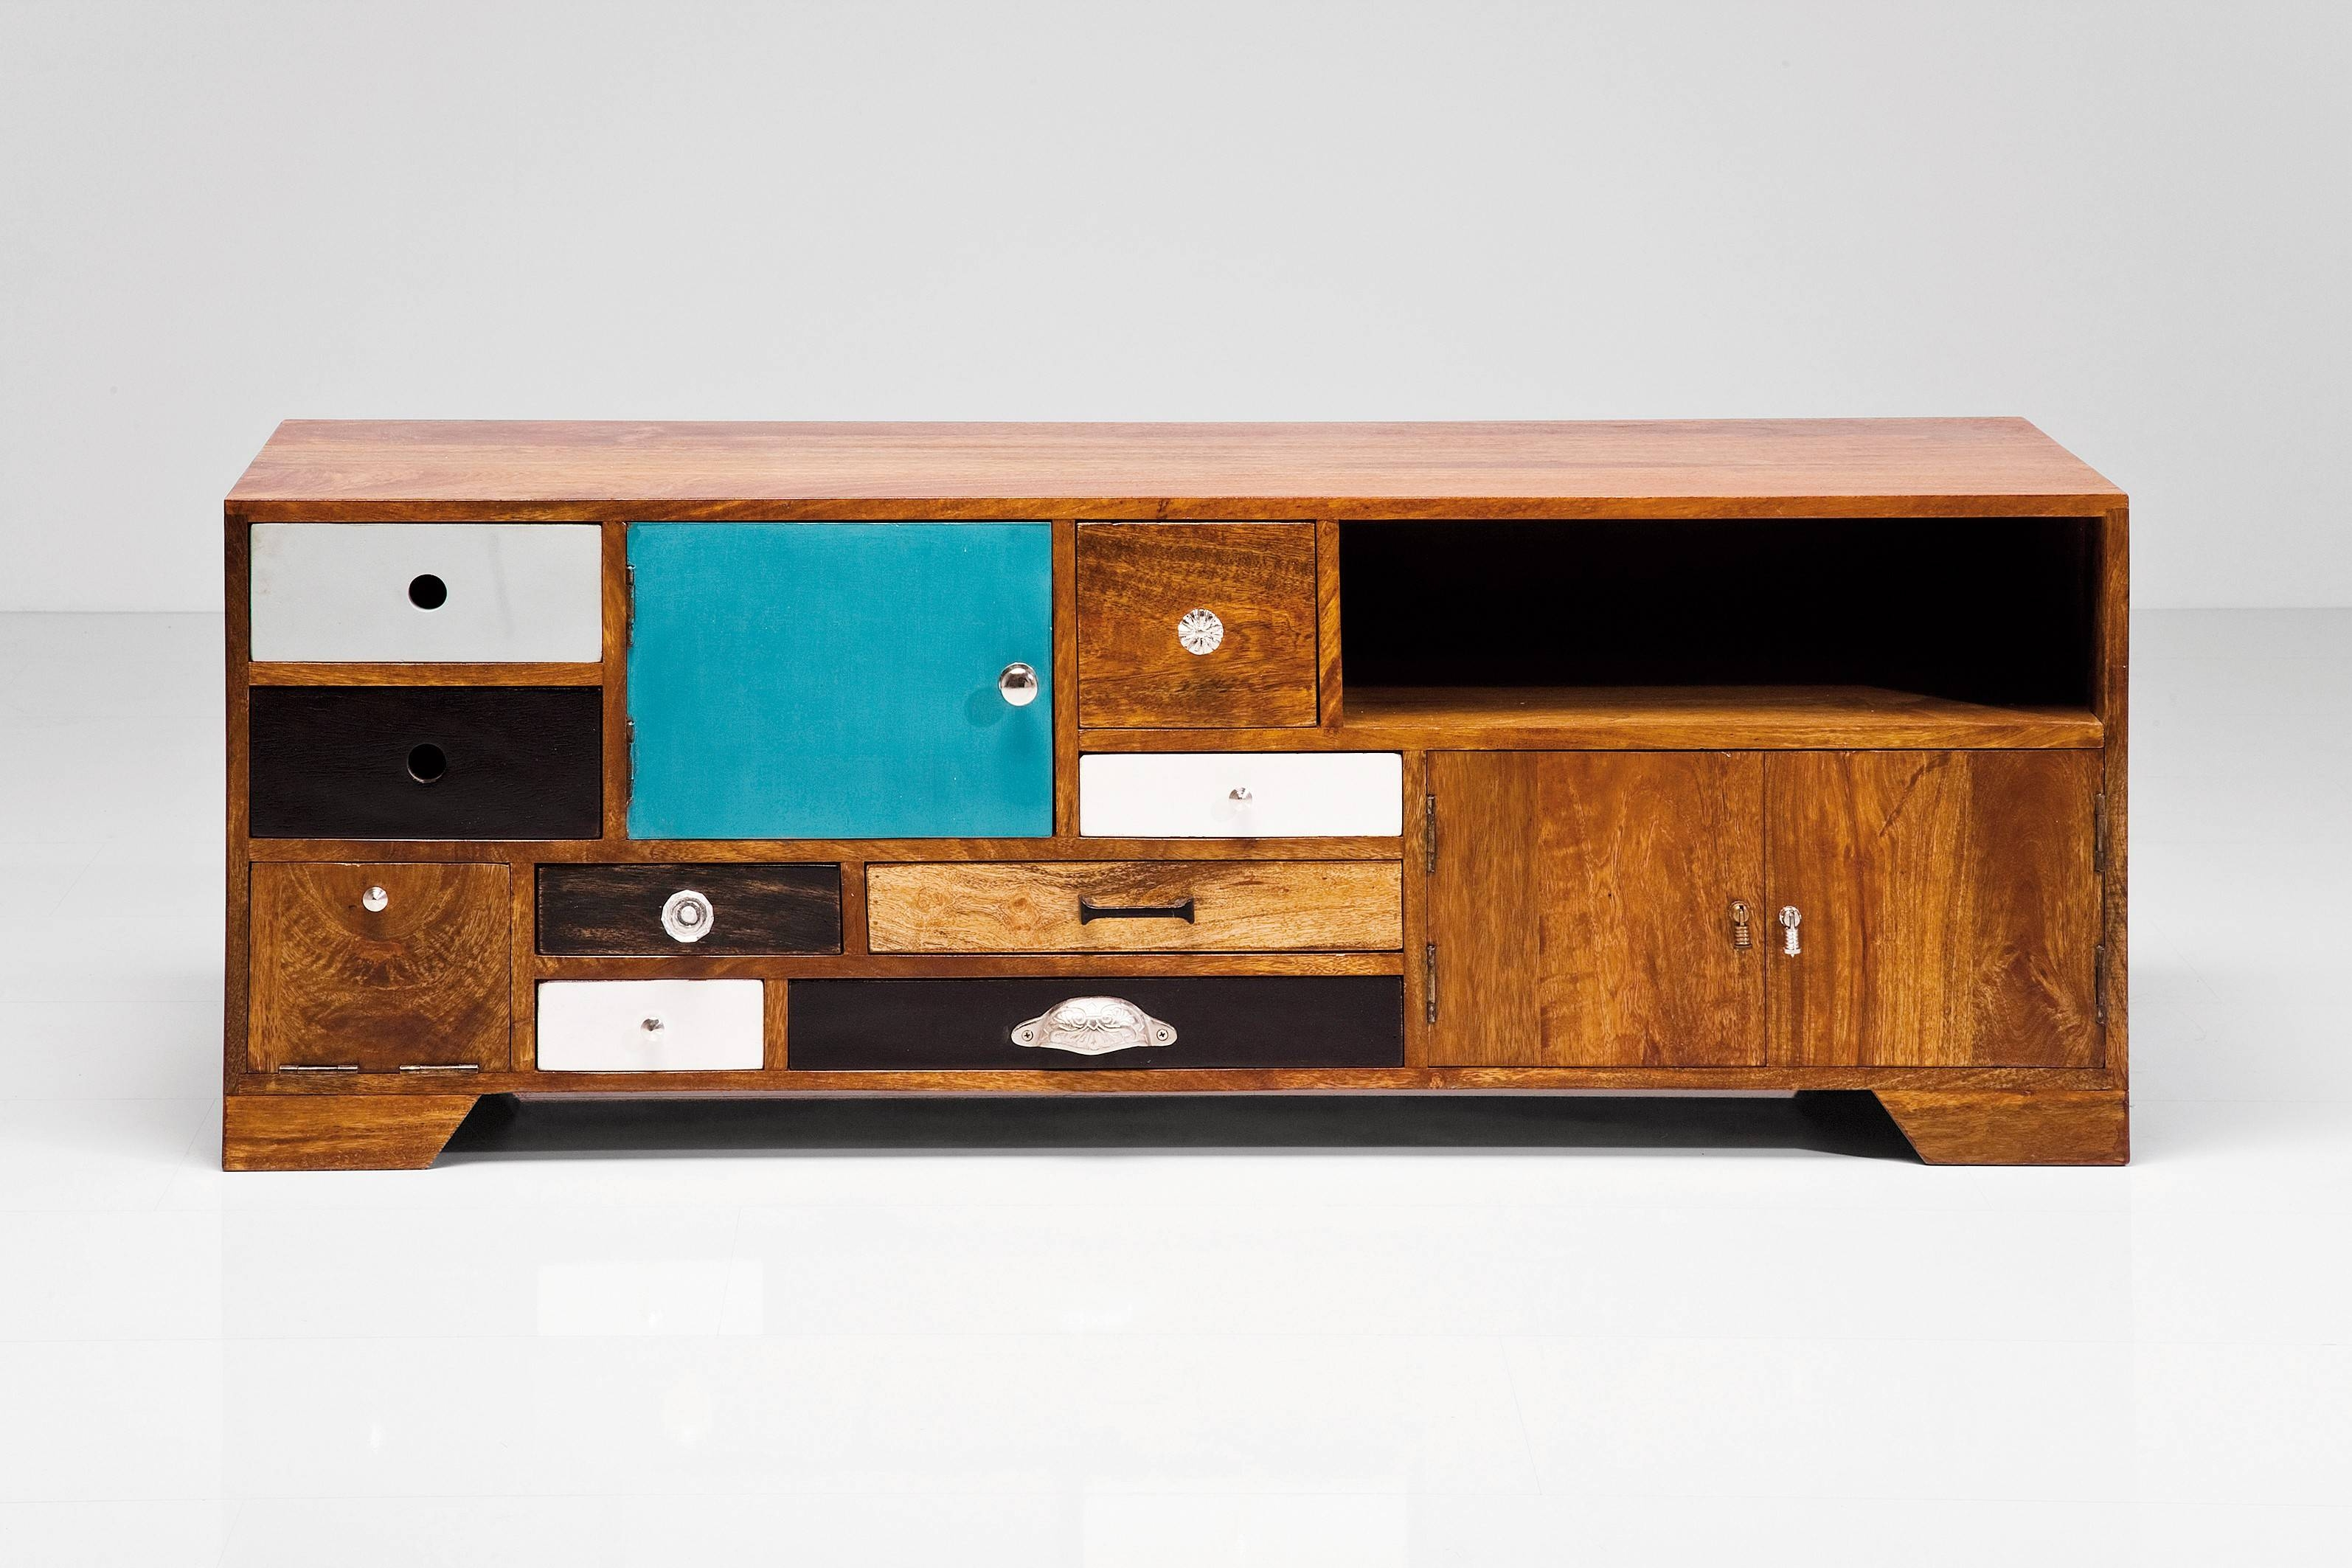 Upcycled Retro Sideboard And Media Uniti Love Retro | I Love Retro for Media Sideboards (Image 15 of 15)